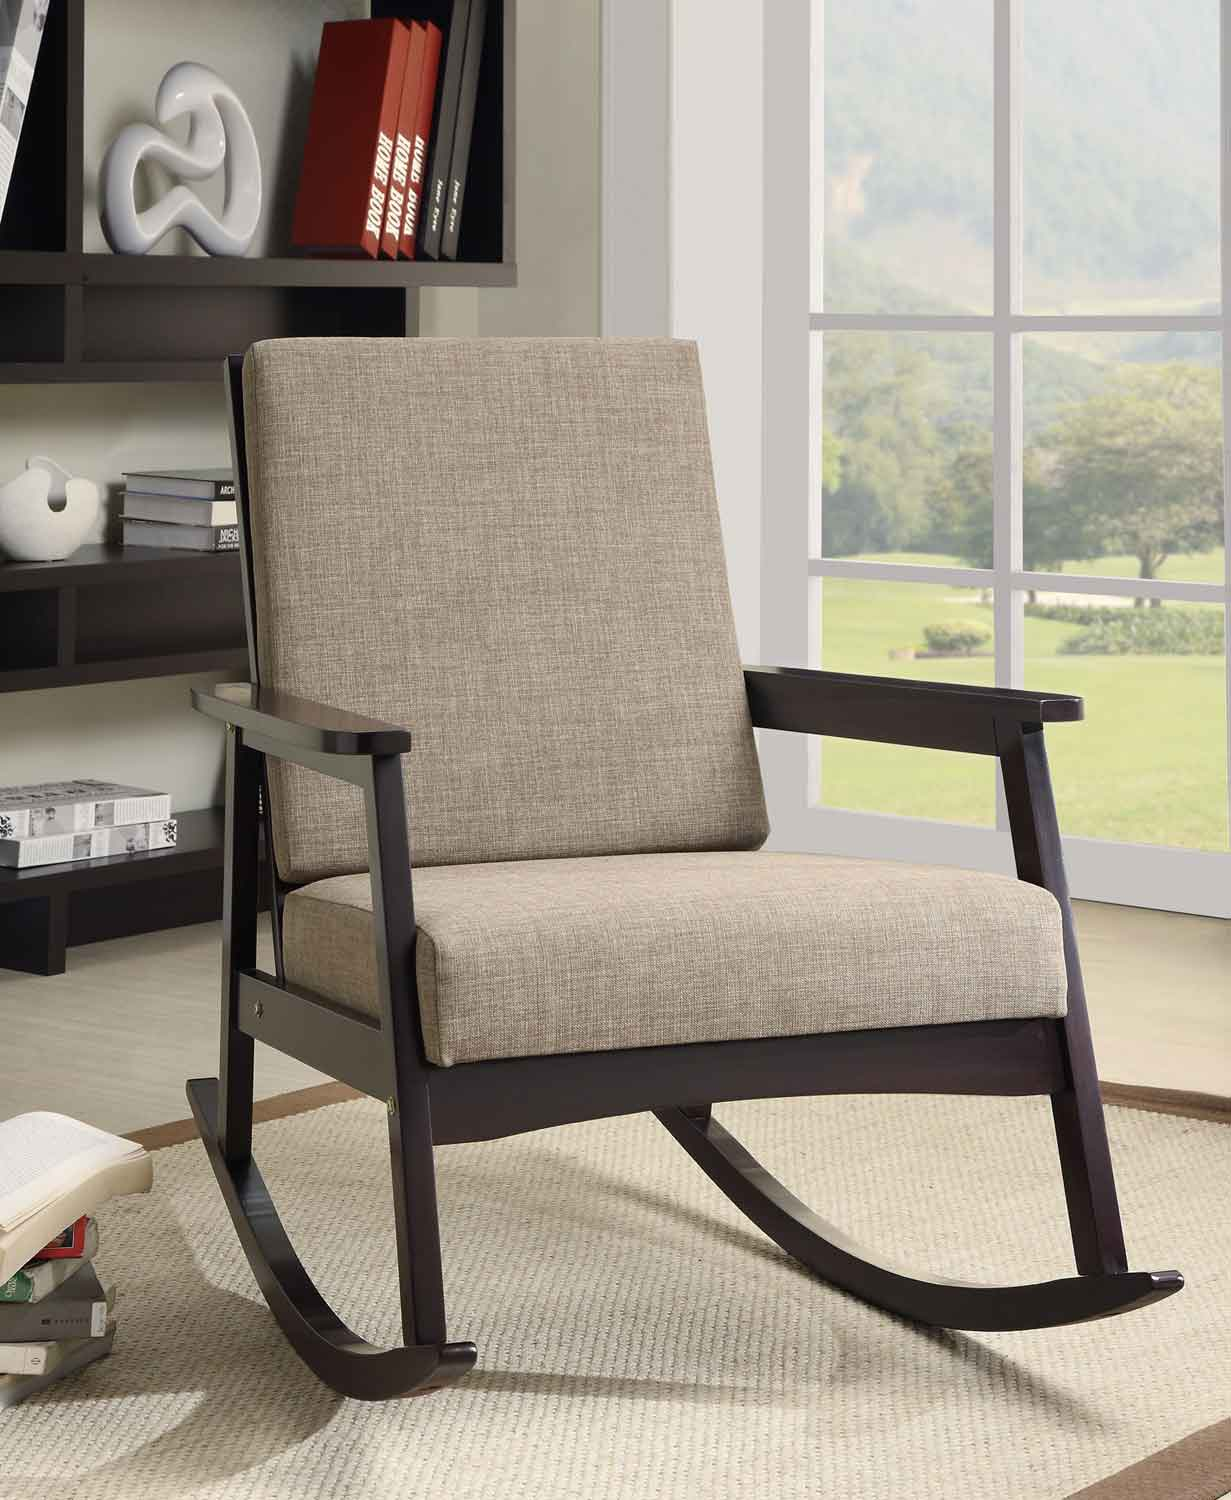 Getting the stylish modern rocking chair for your comfy for Small cozy chair